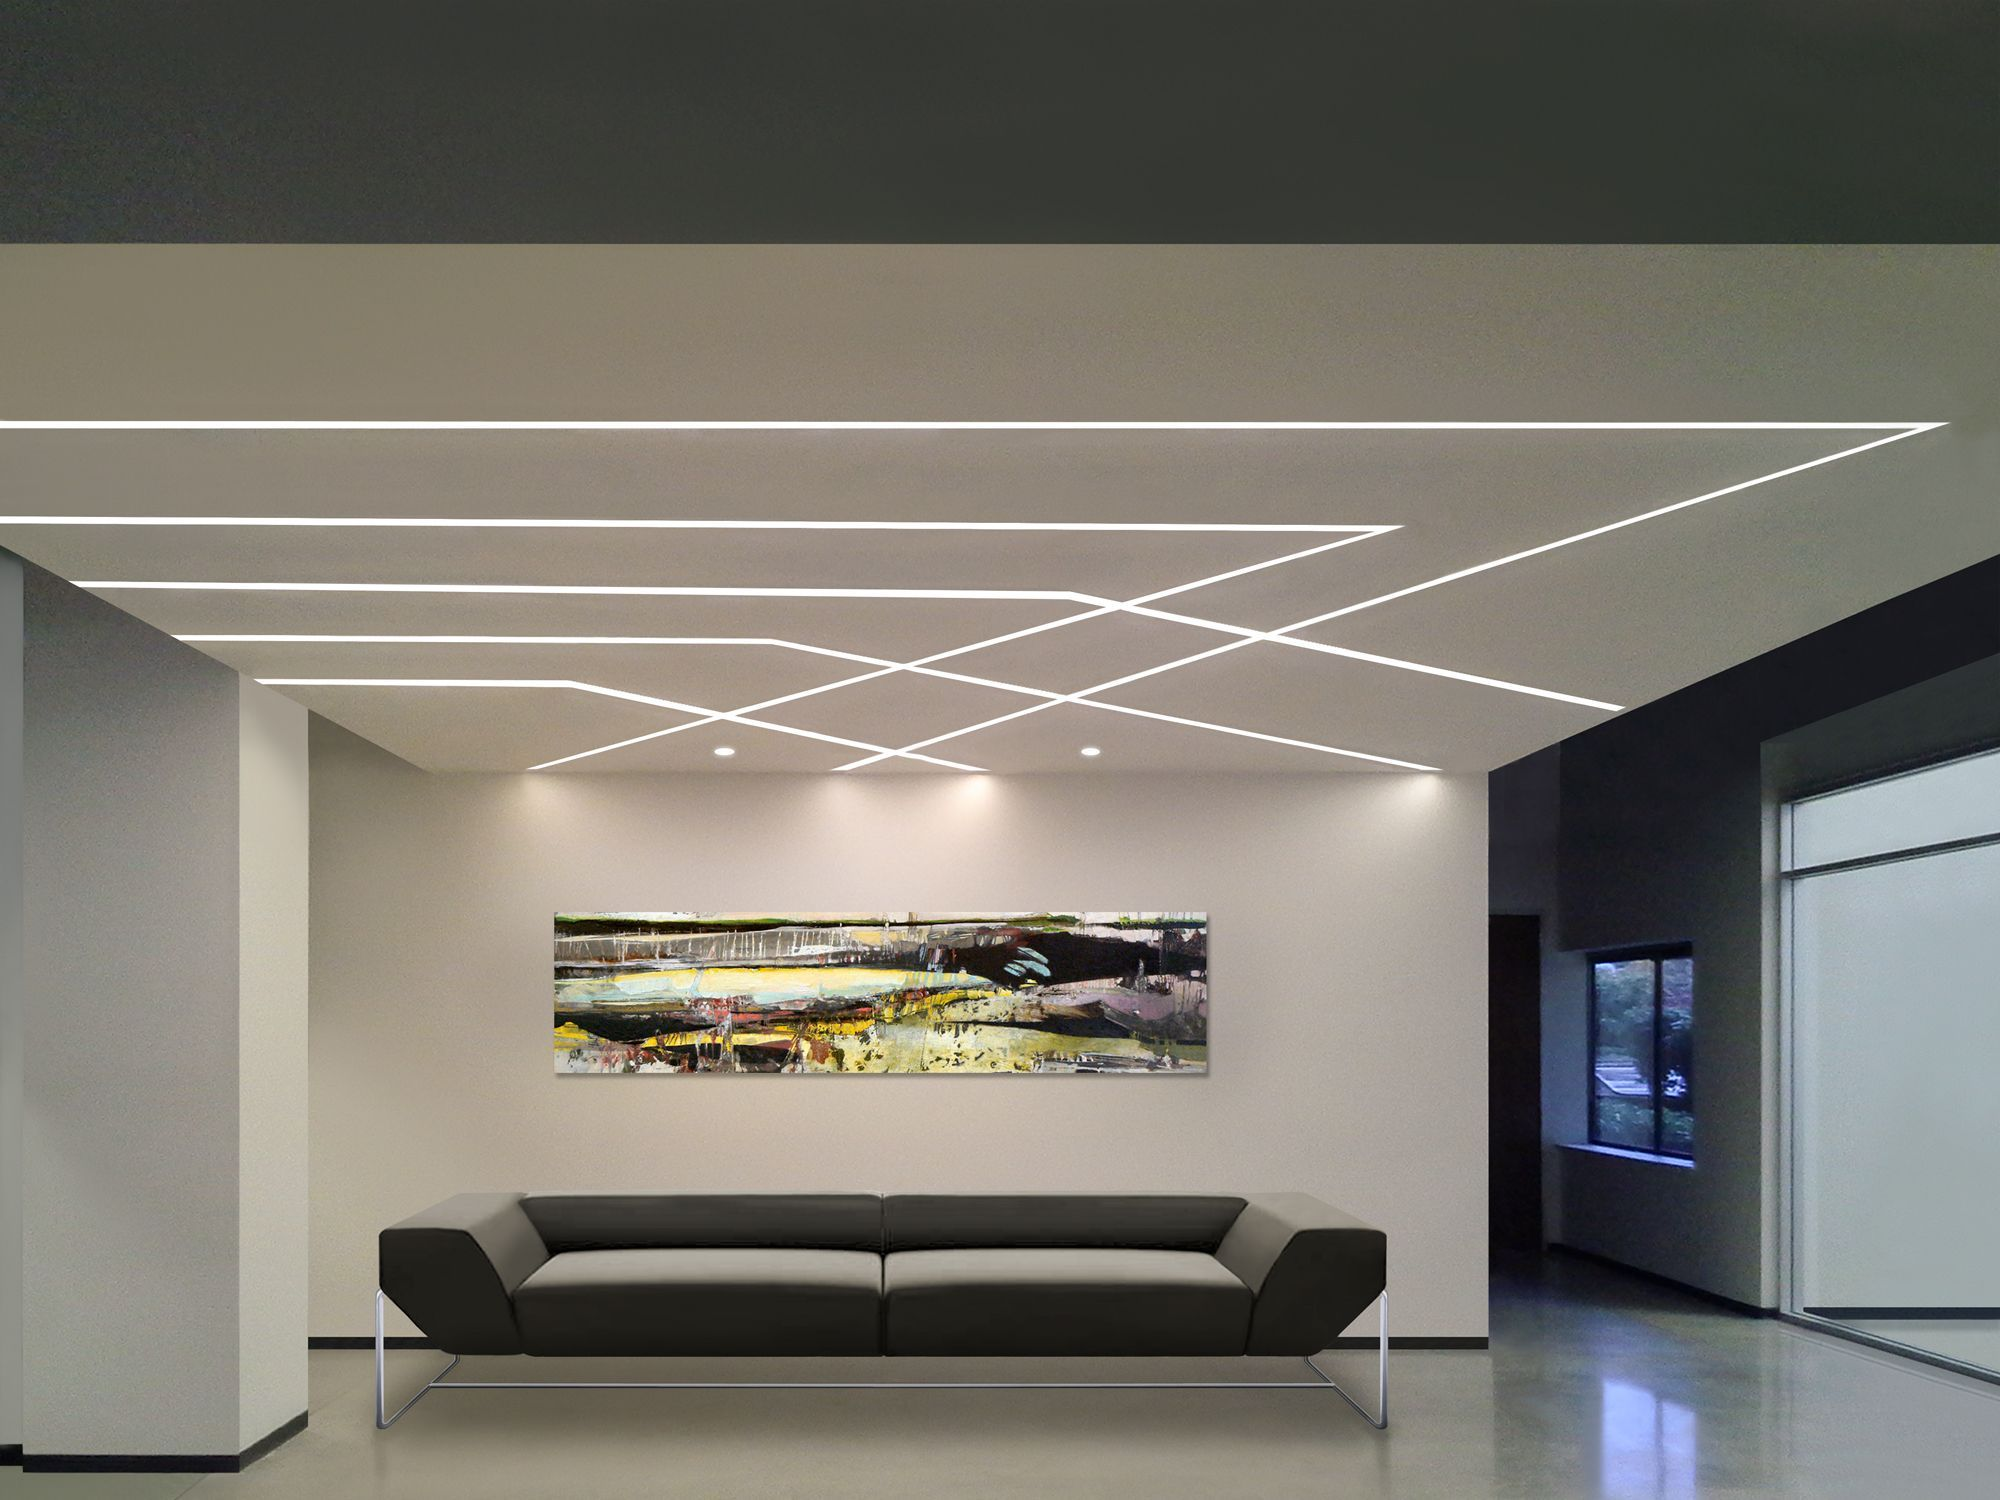 Best A Ceiling Is An Overhead Interior Surface That Covers The 400 x 300